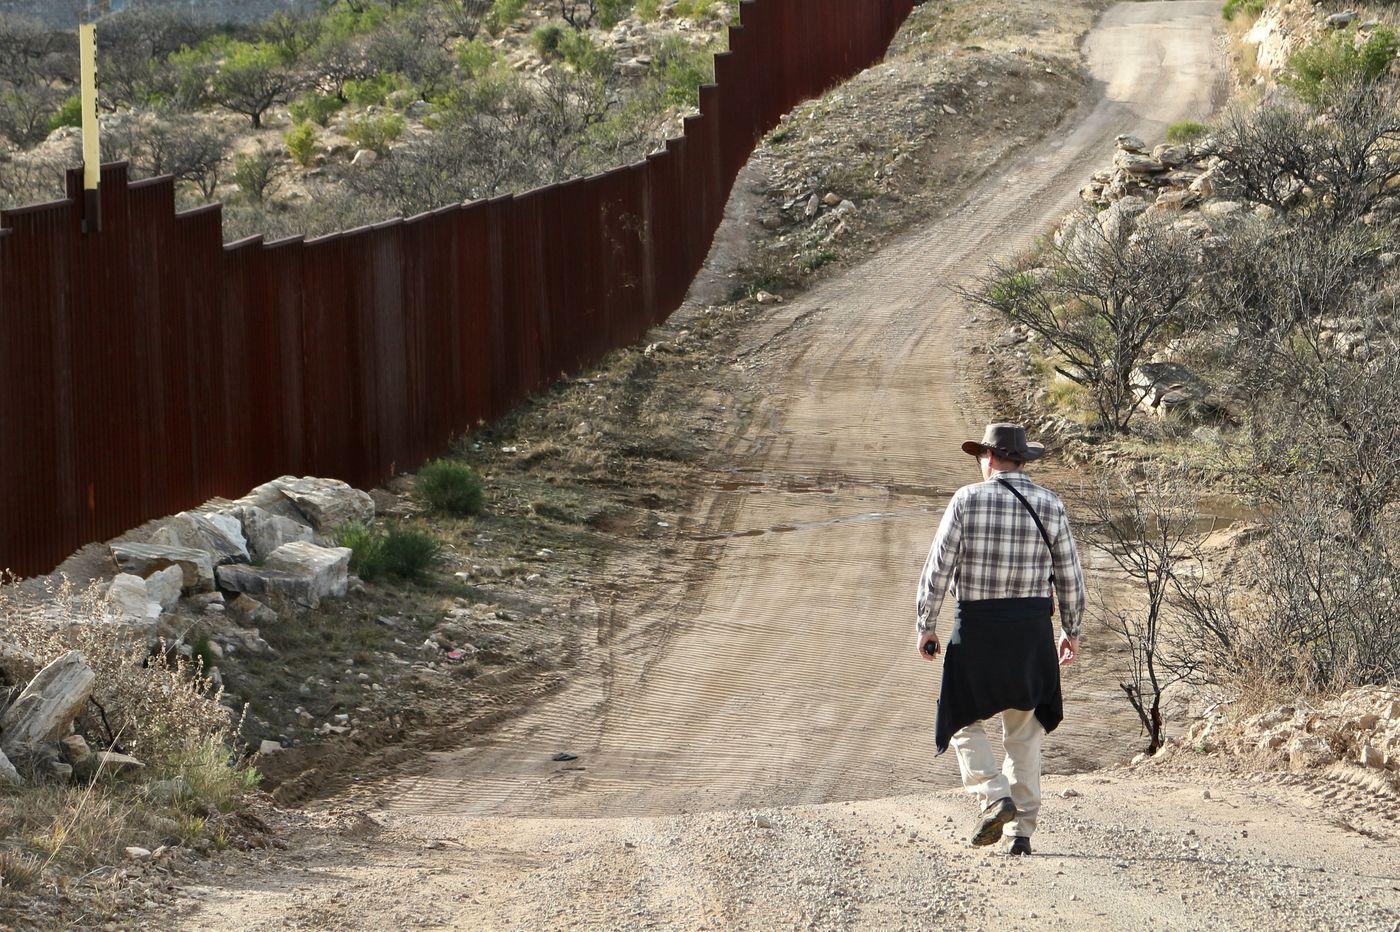 On the Arizona border, once a technicality and now a barrier